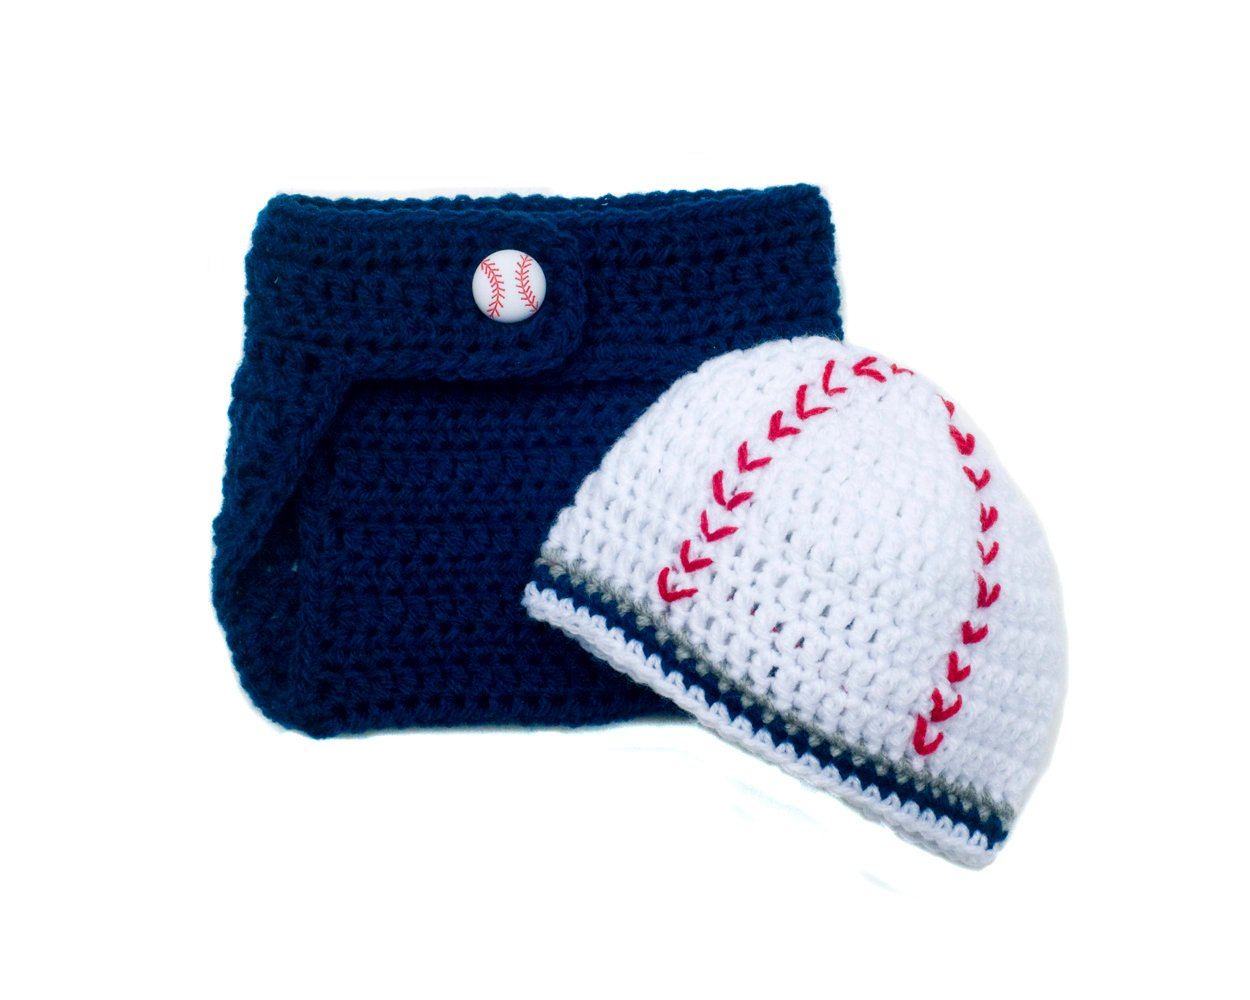 49773c3a3 Yankees Baseball Baby Boy Crochet Beanie Hat & Diaper Cover ...